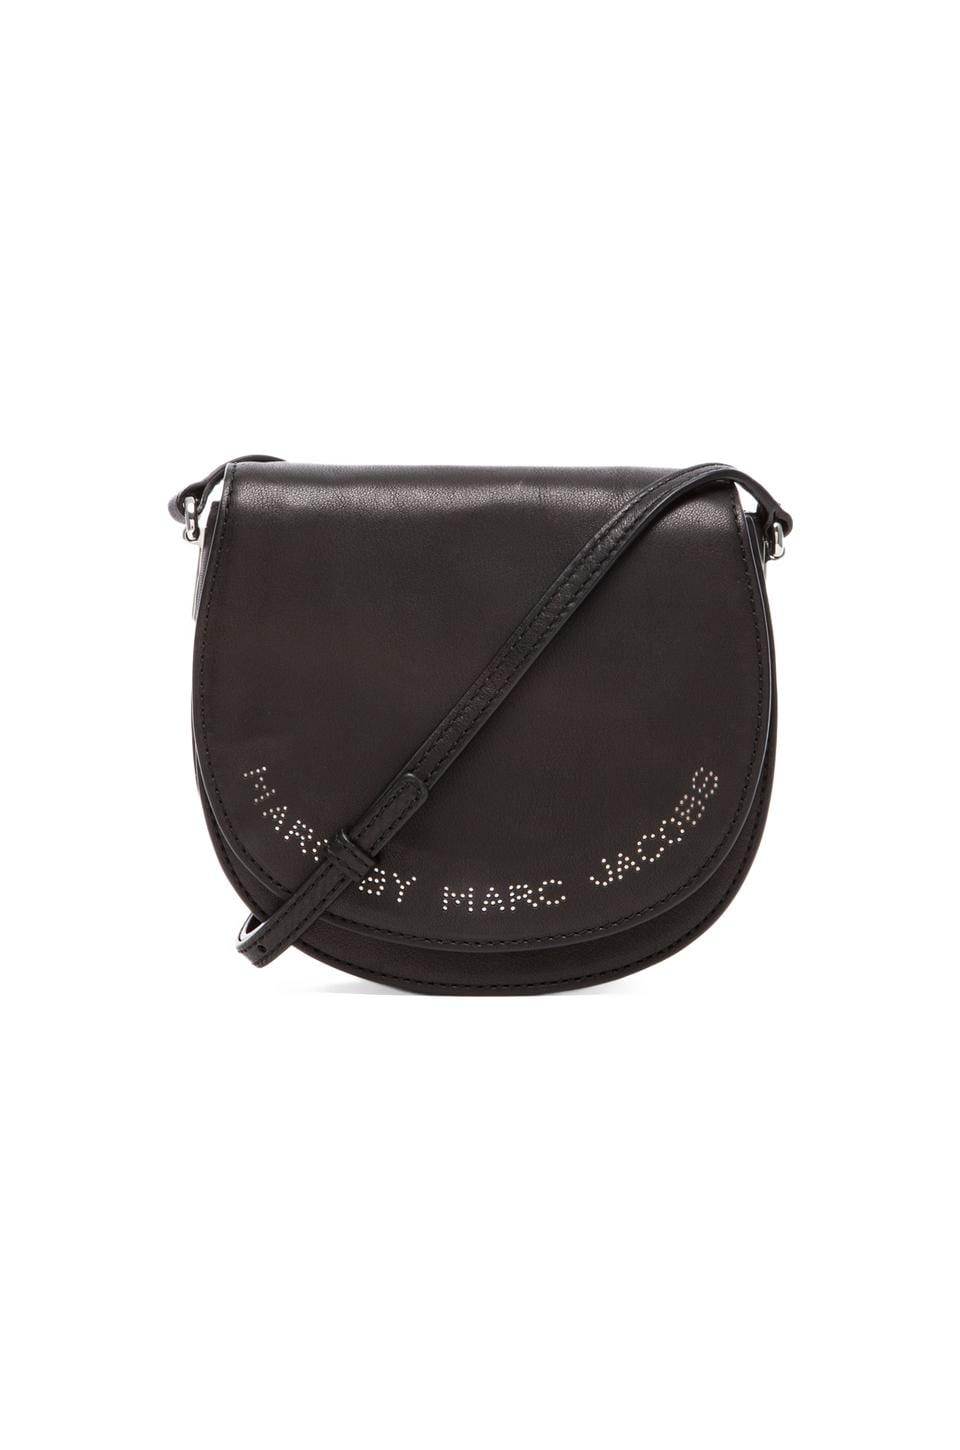 Marc by Marc Jacobs Sweet Jane June Xbody in Black